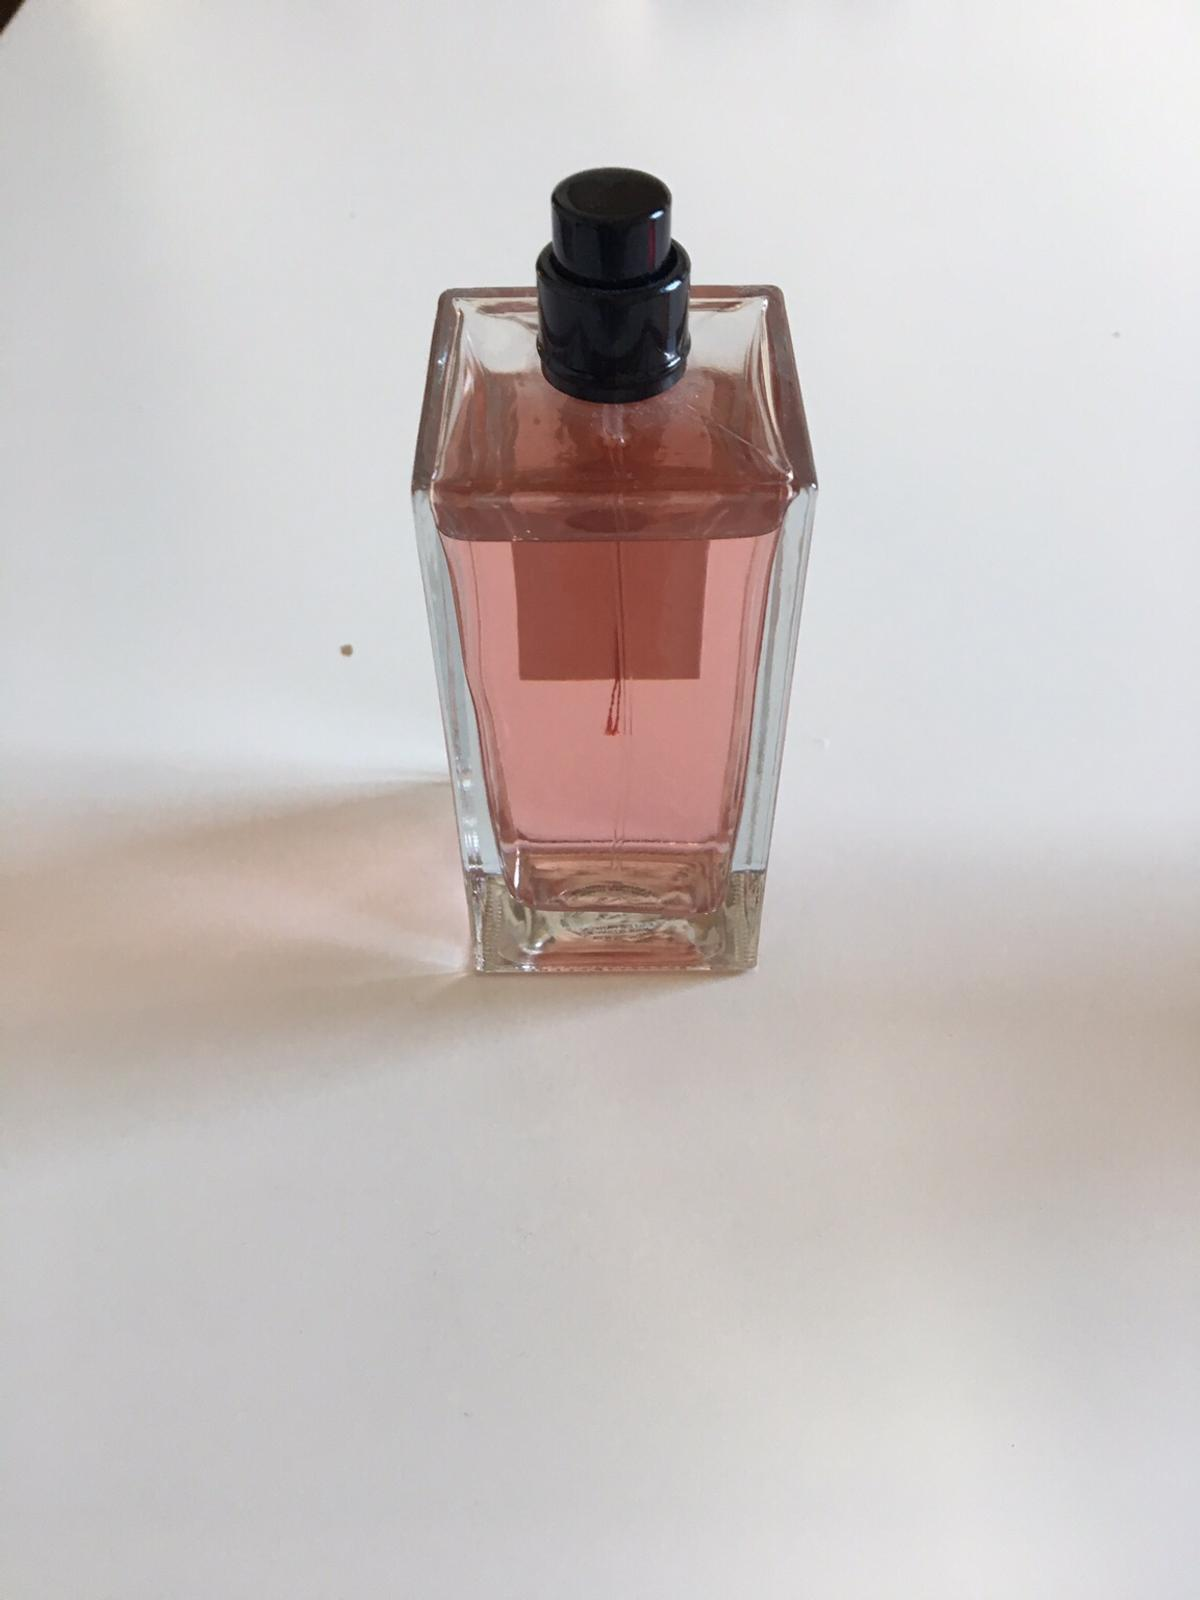 Givenchy Rose Ardente 100 Ml In Nw8 Westminster For 7500 For Sale